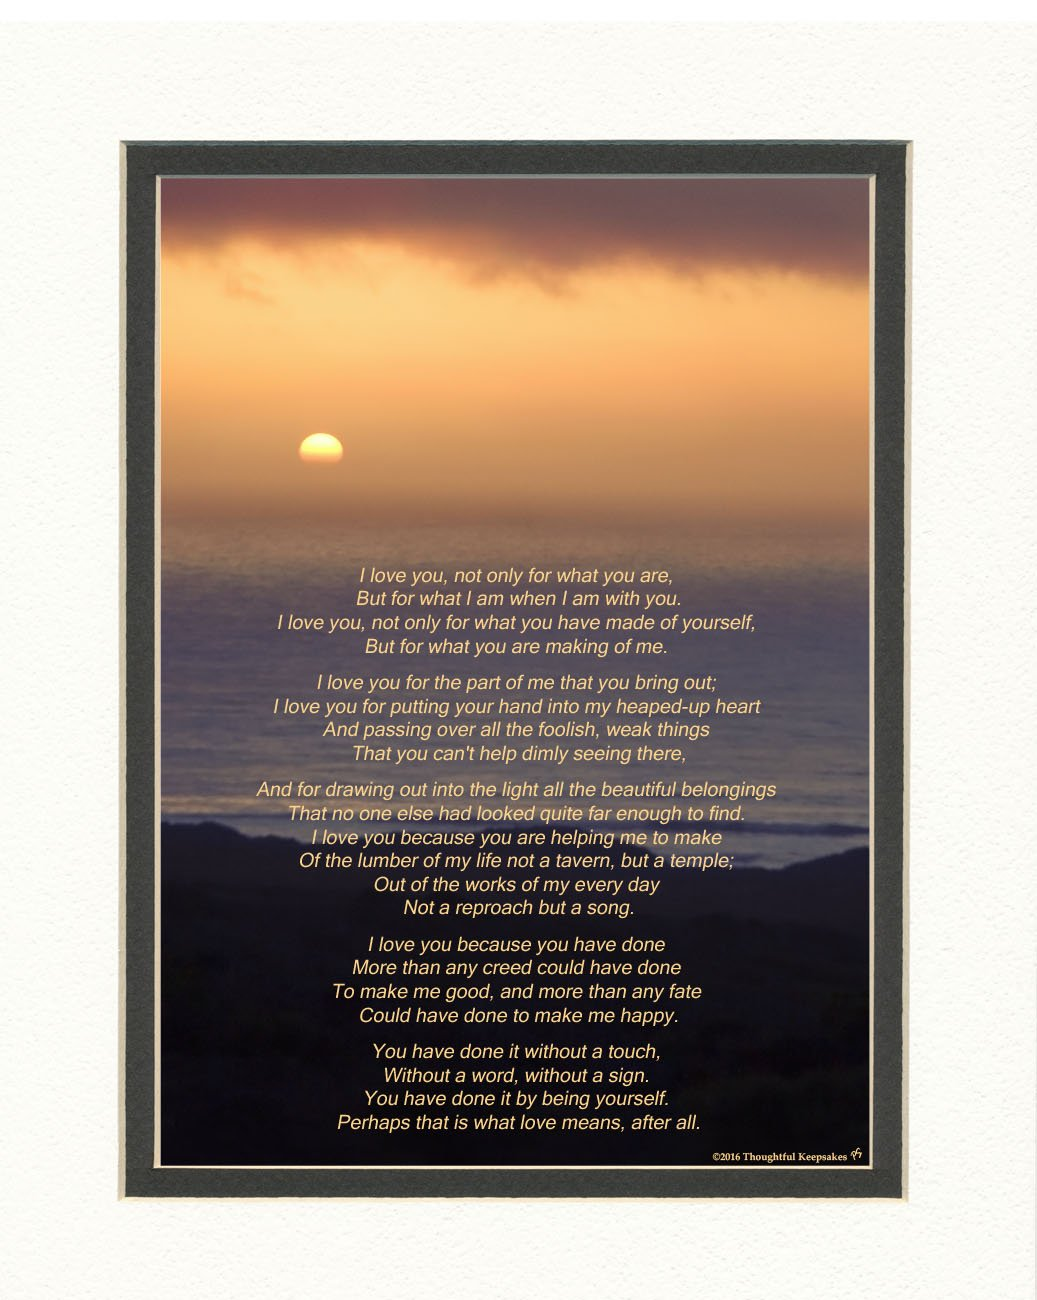 Gift for Husband, Wife, Boyfriend or Girlfriend. Ocean Sunset Photo with ''I Love You'' Poem by Roy Croft, 8x10 Double Matted. Special Anniversary Gift, Valentine's Day, Birthday, Christmas Gifts